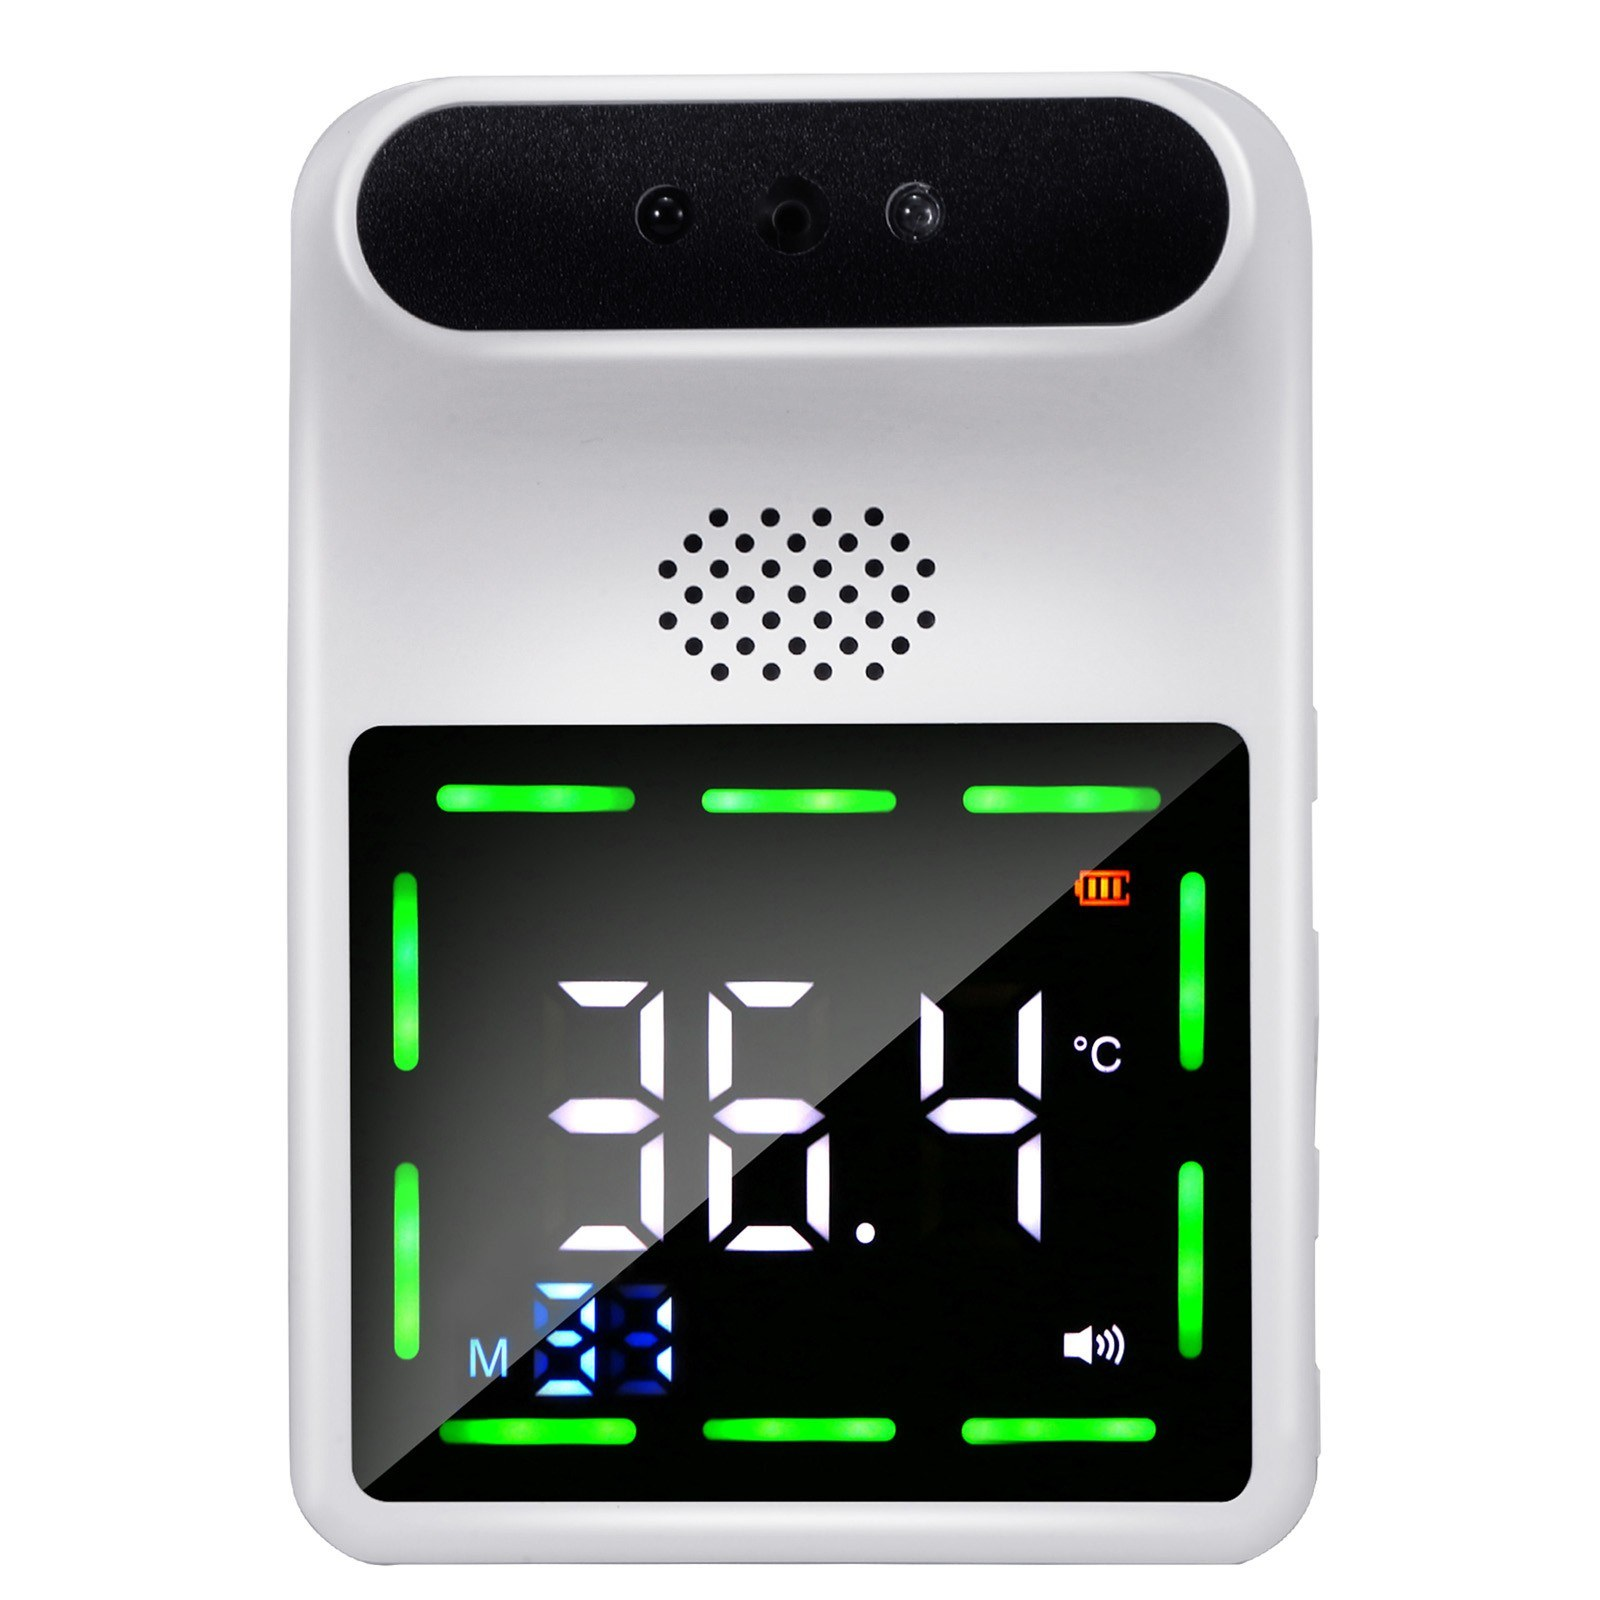 tomtop.com - 57% OFF Touchless IR Thermometer, Free Shipping $15.29